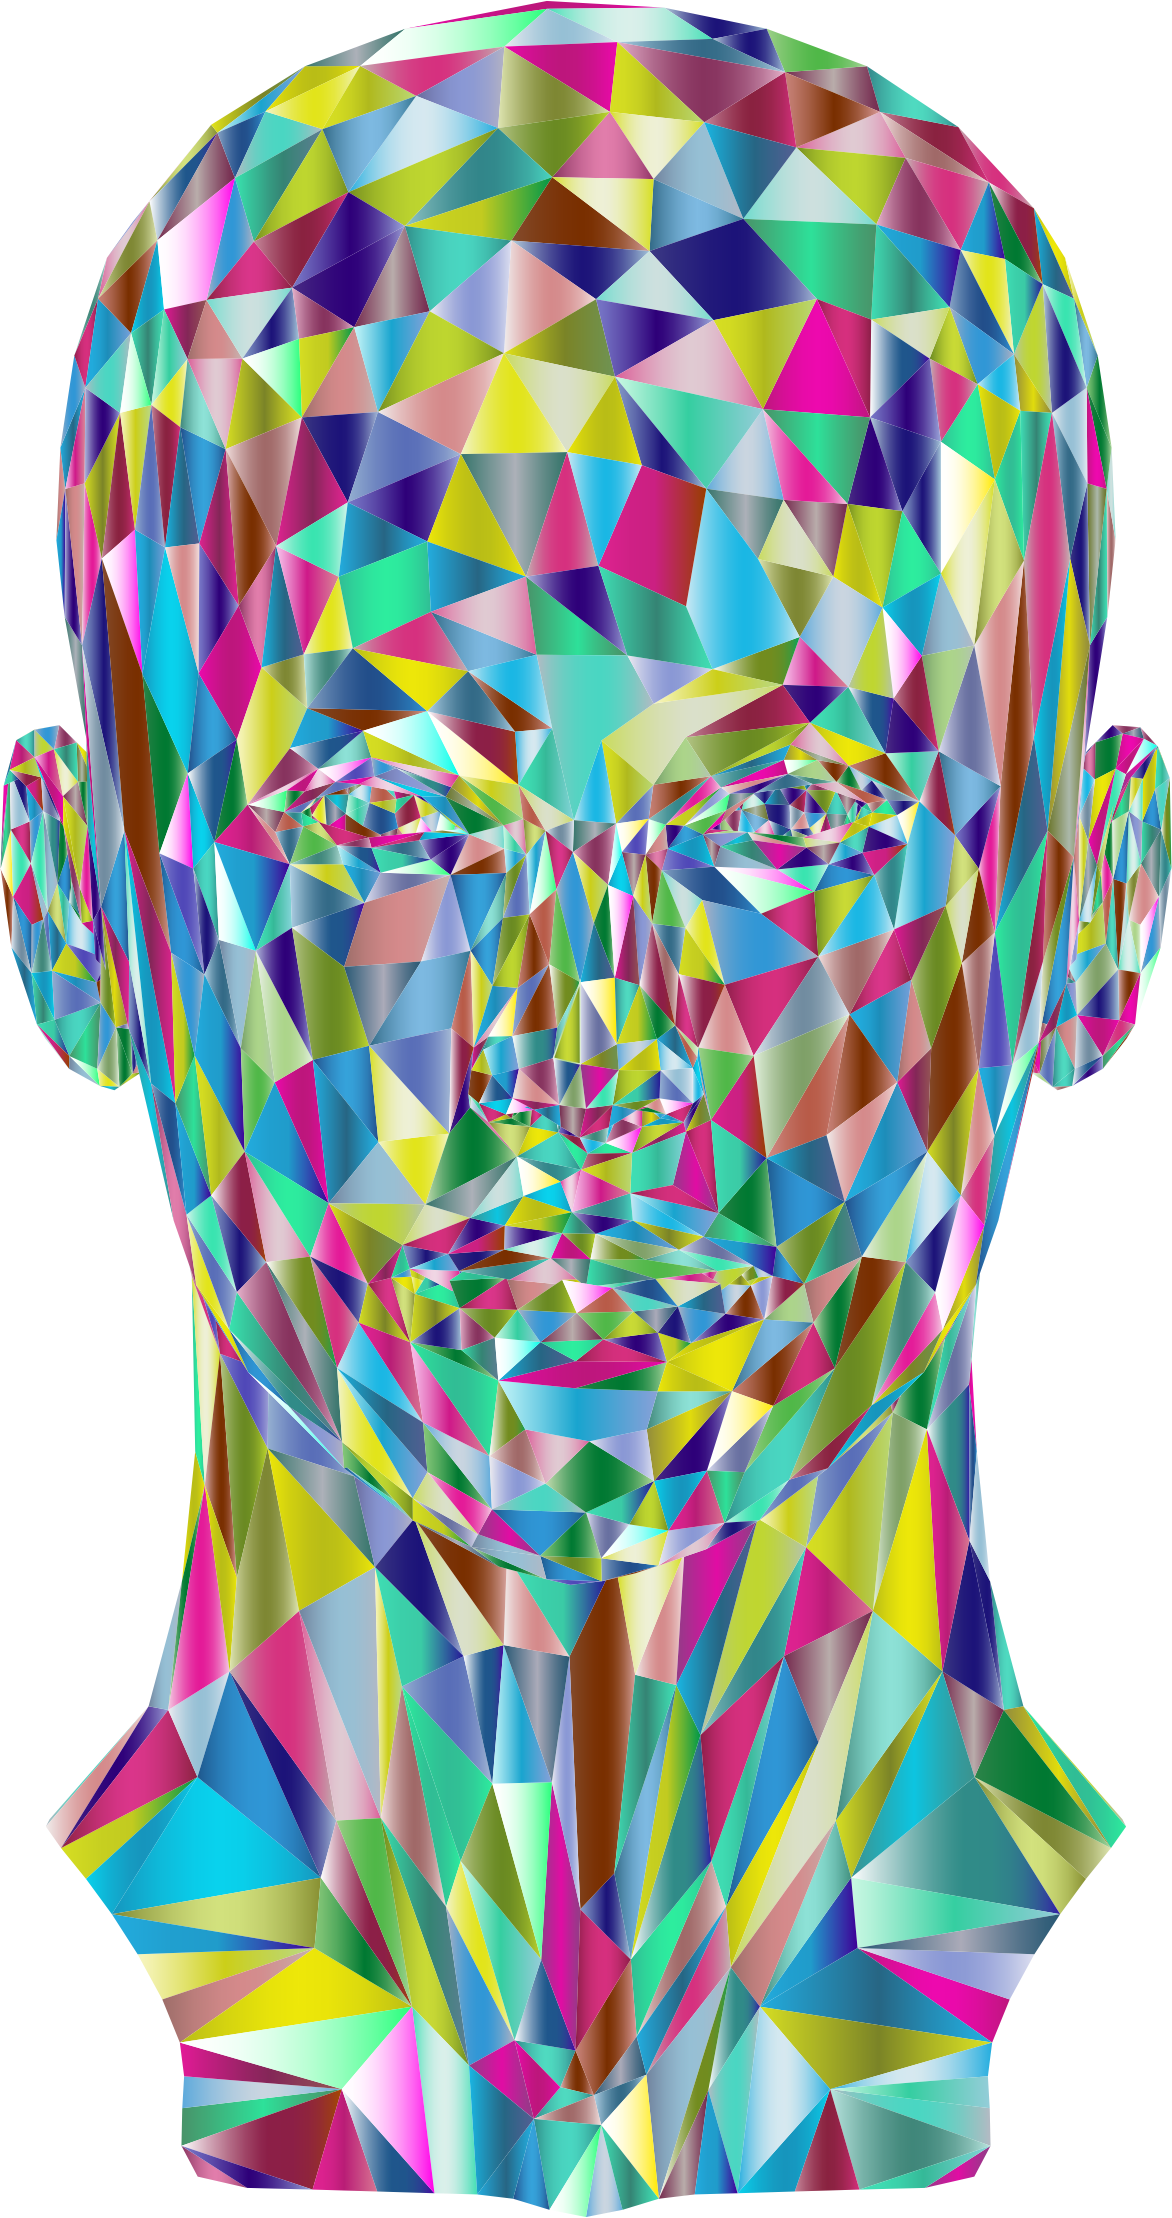 Prismatic Low Poly Female Head 2 by GDJ